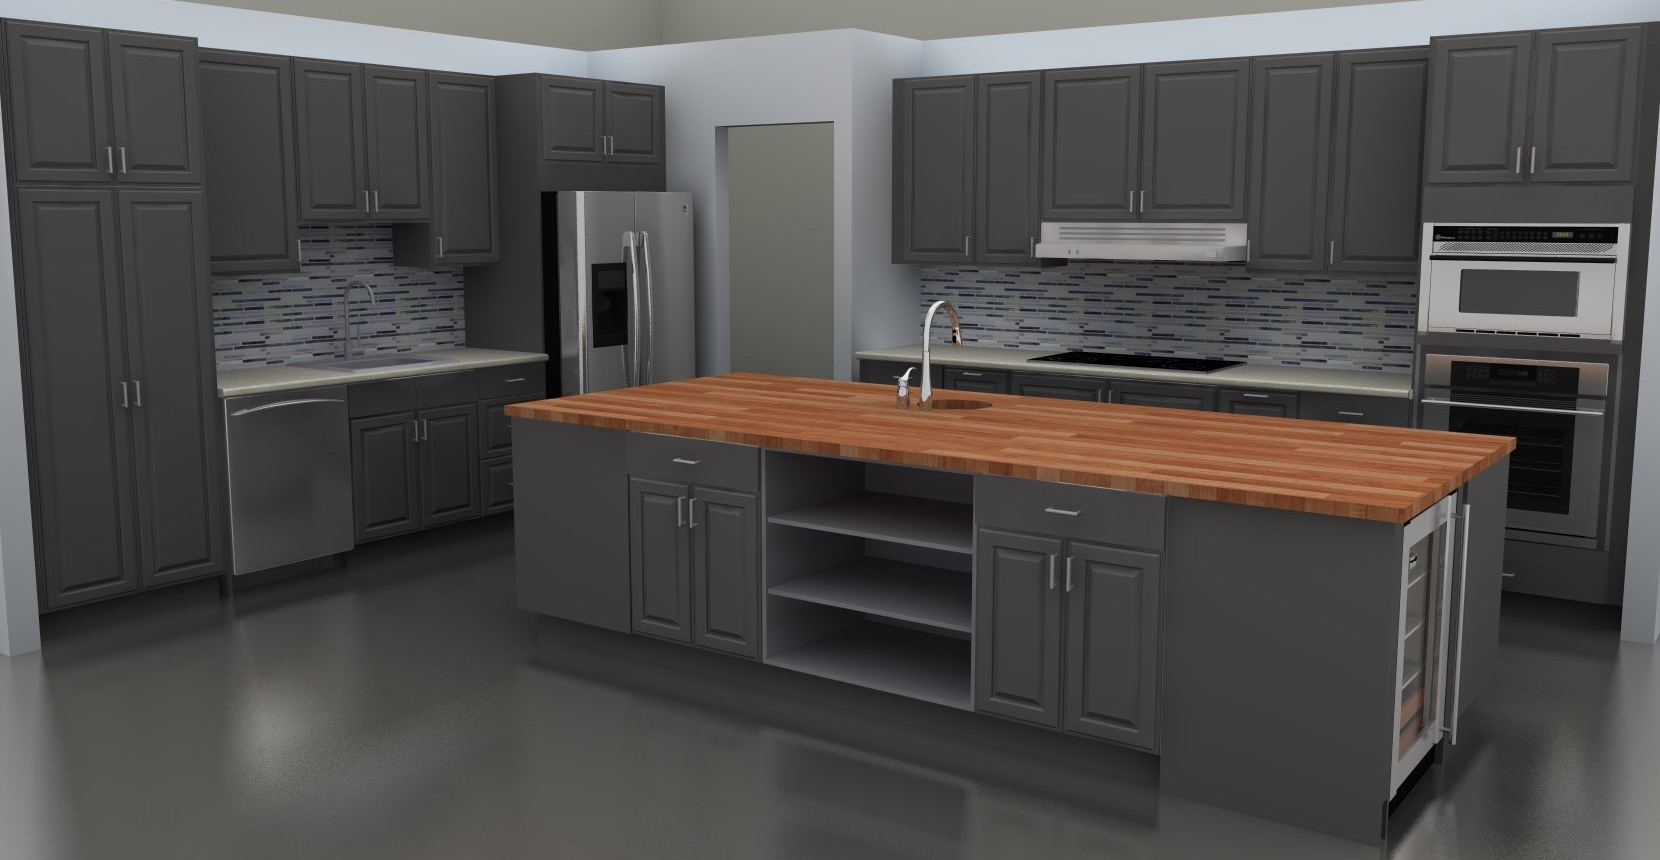 Ikea Island Cover Panel Installation ~ Stylish LIDINGO gray doors for a new IKEA kitchen